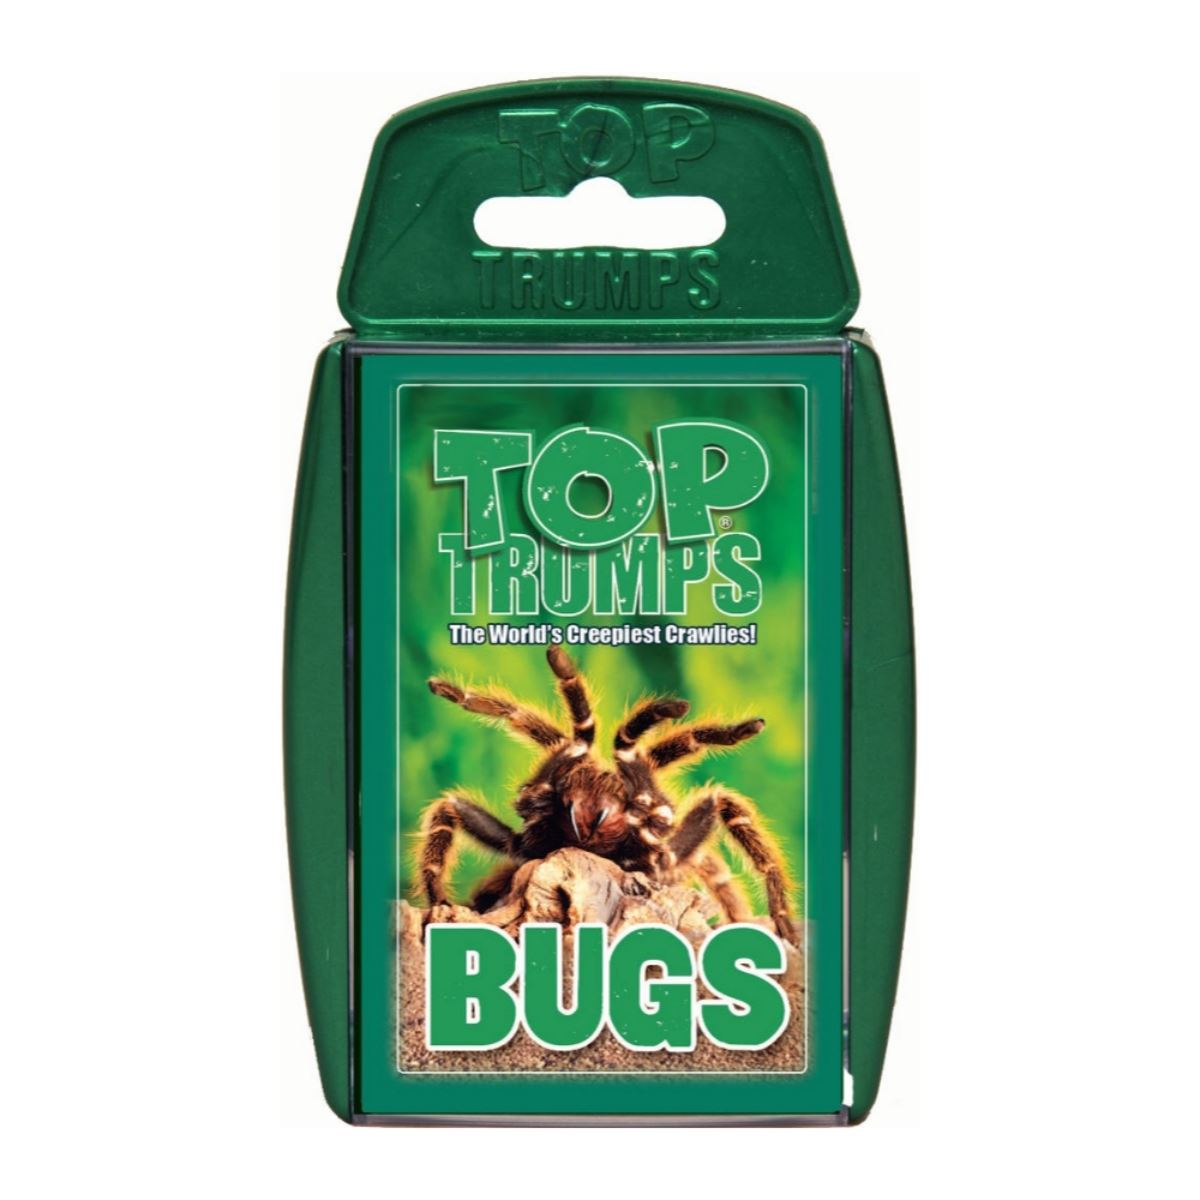 Bugs -Top Trumps Game, front of box